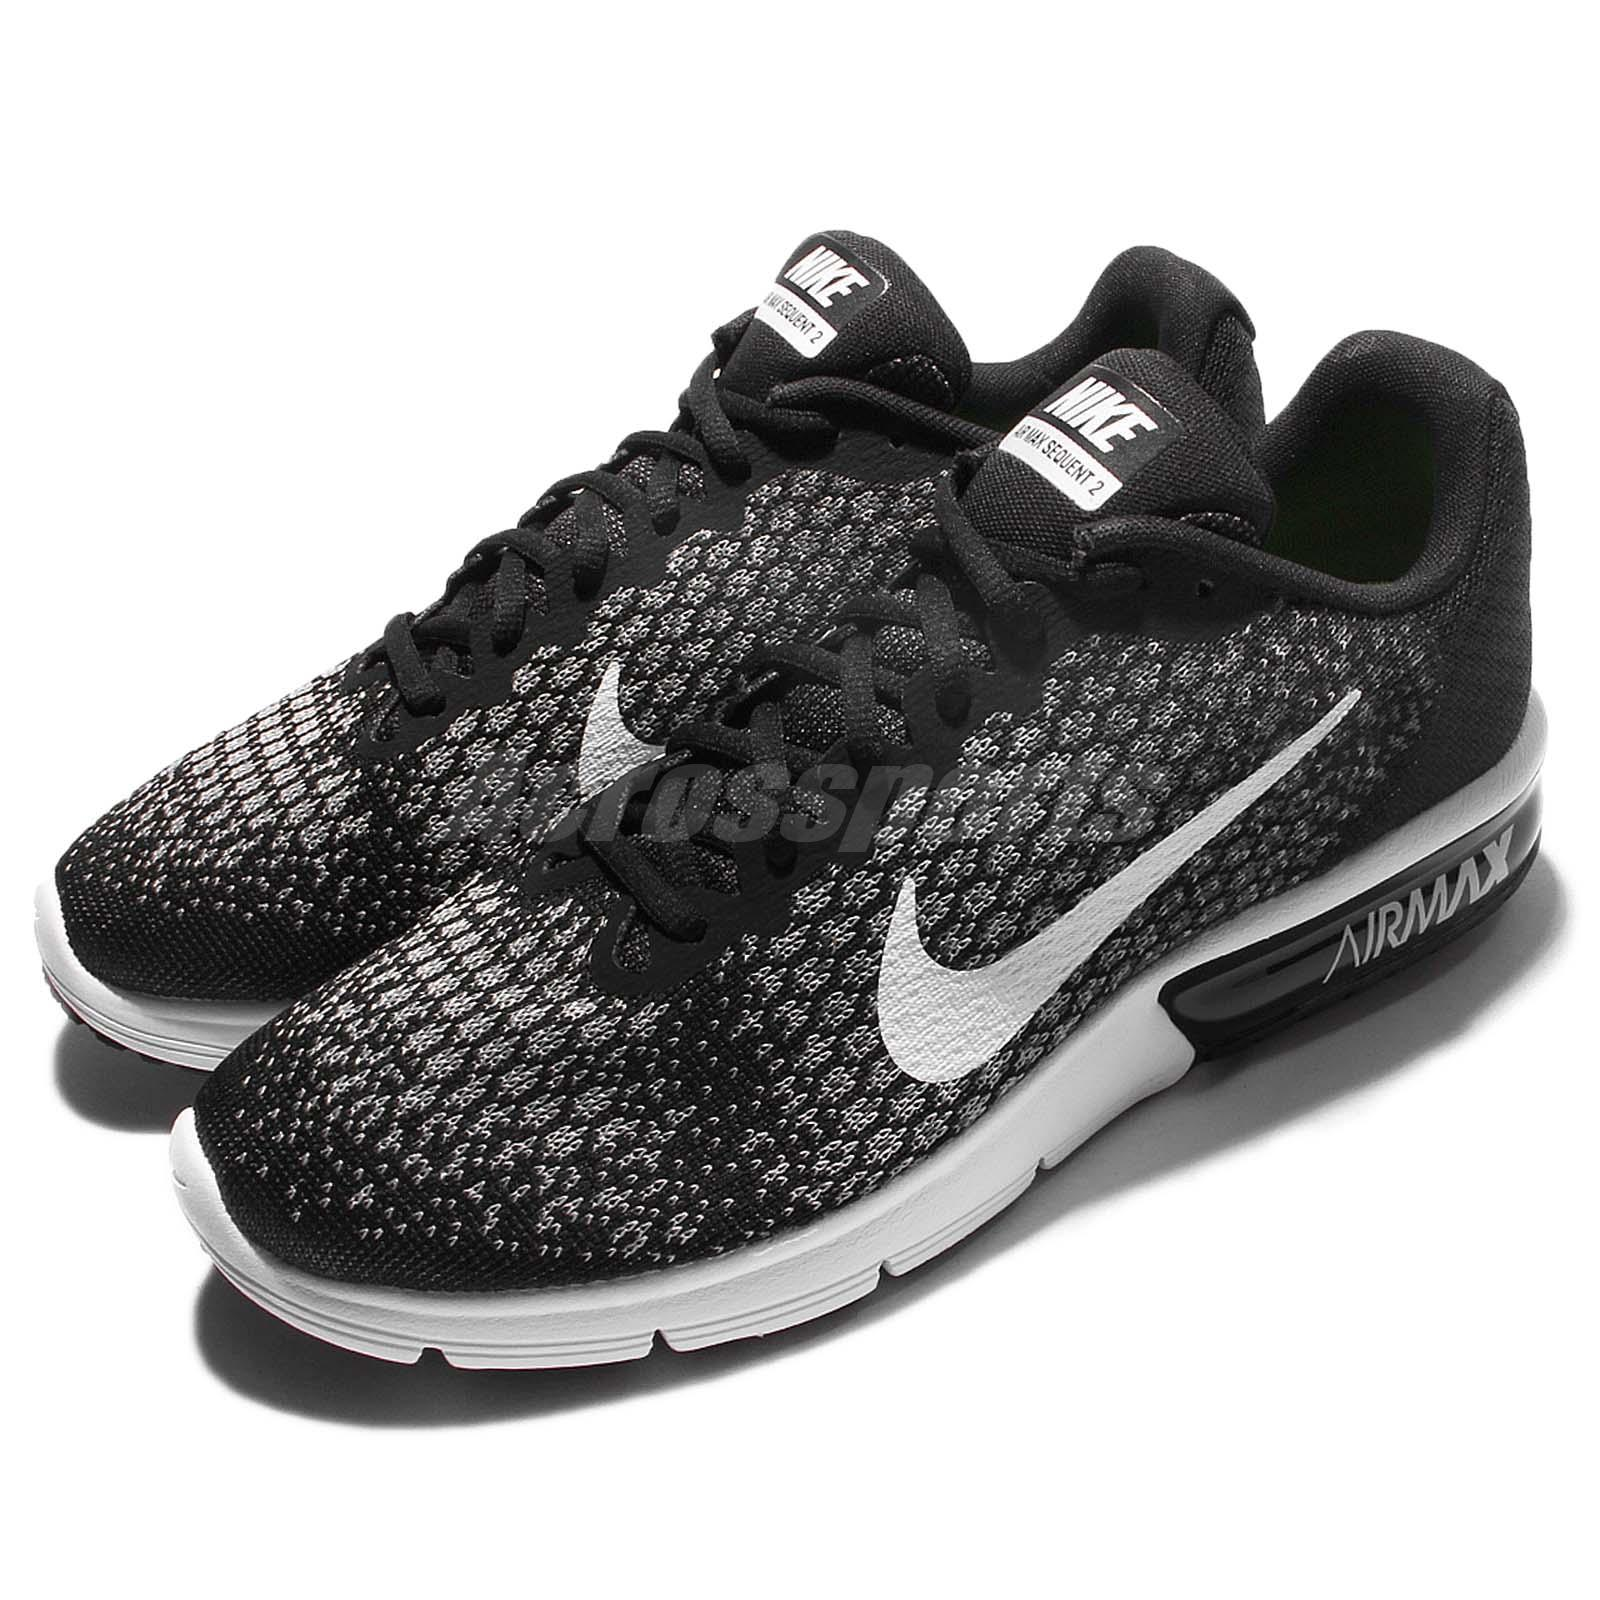 dfe8e08ca04 Details about Nike Air Max Sequent 2 II Black White Men Running Shoes  Sneakers 852461-005